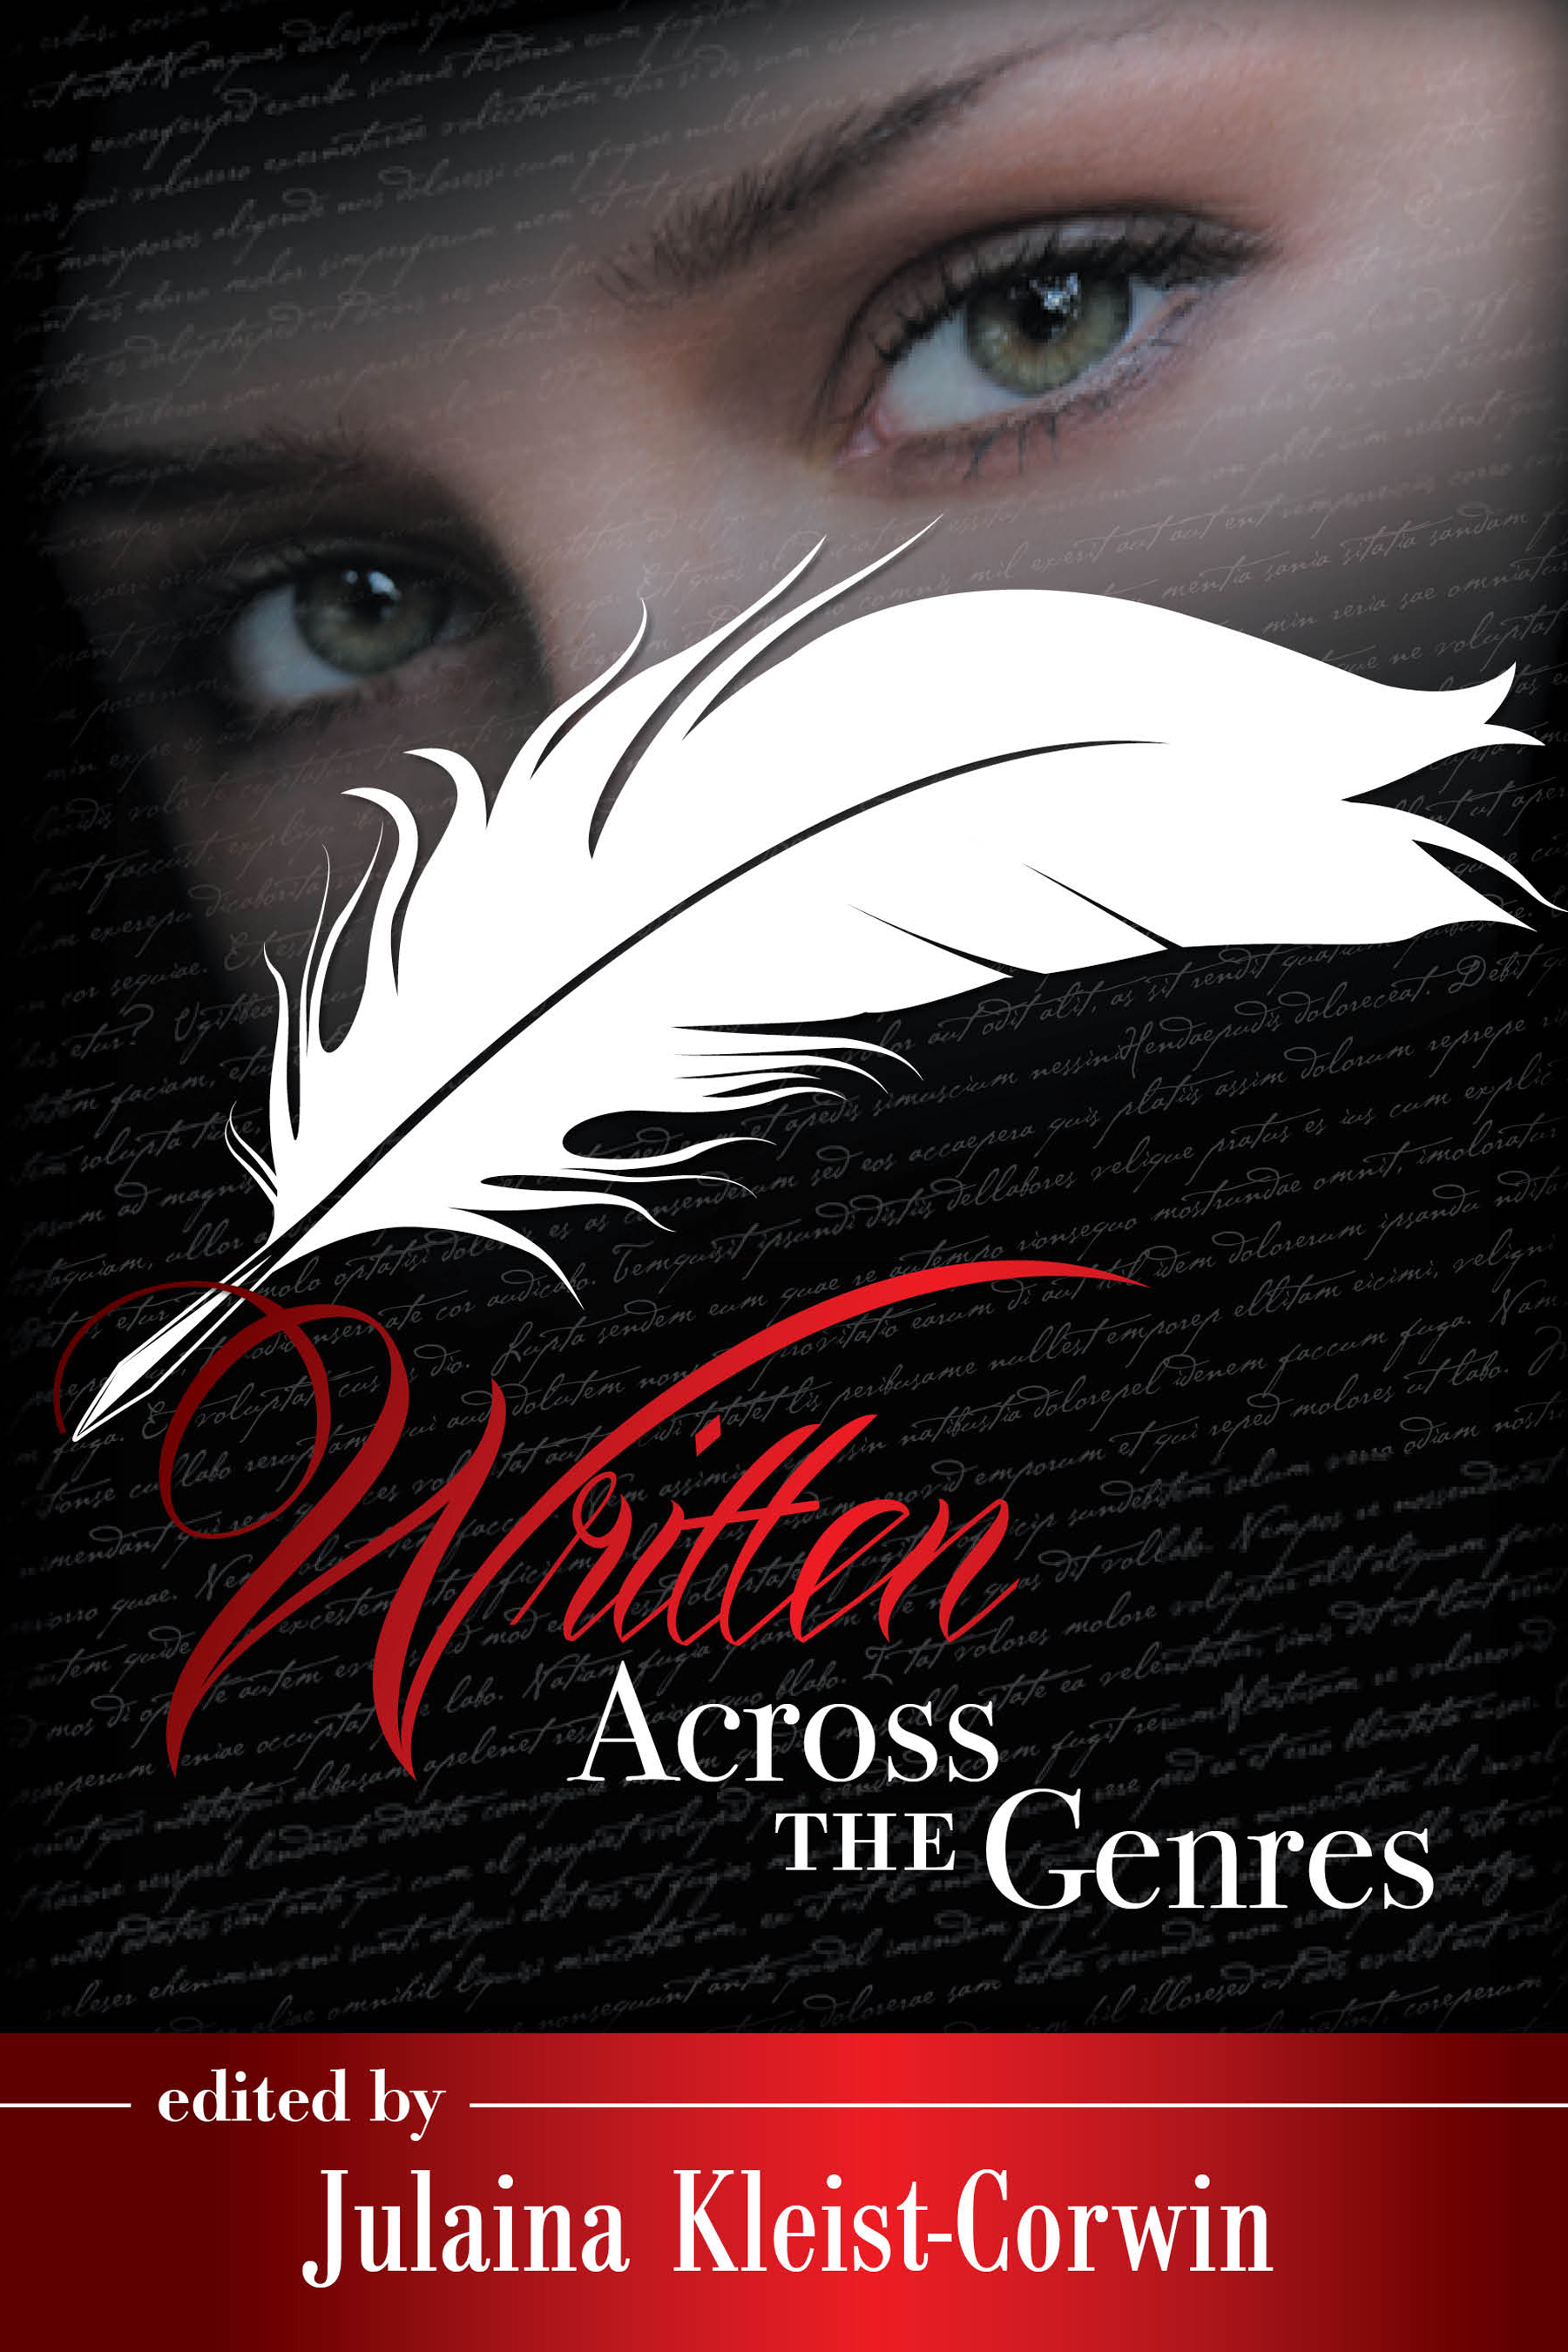 FrontCover of Written Across the GenresHI